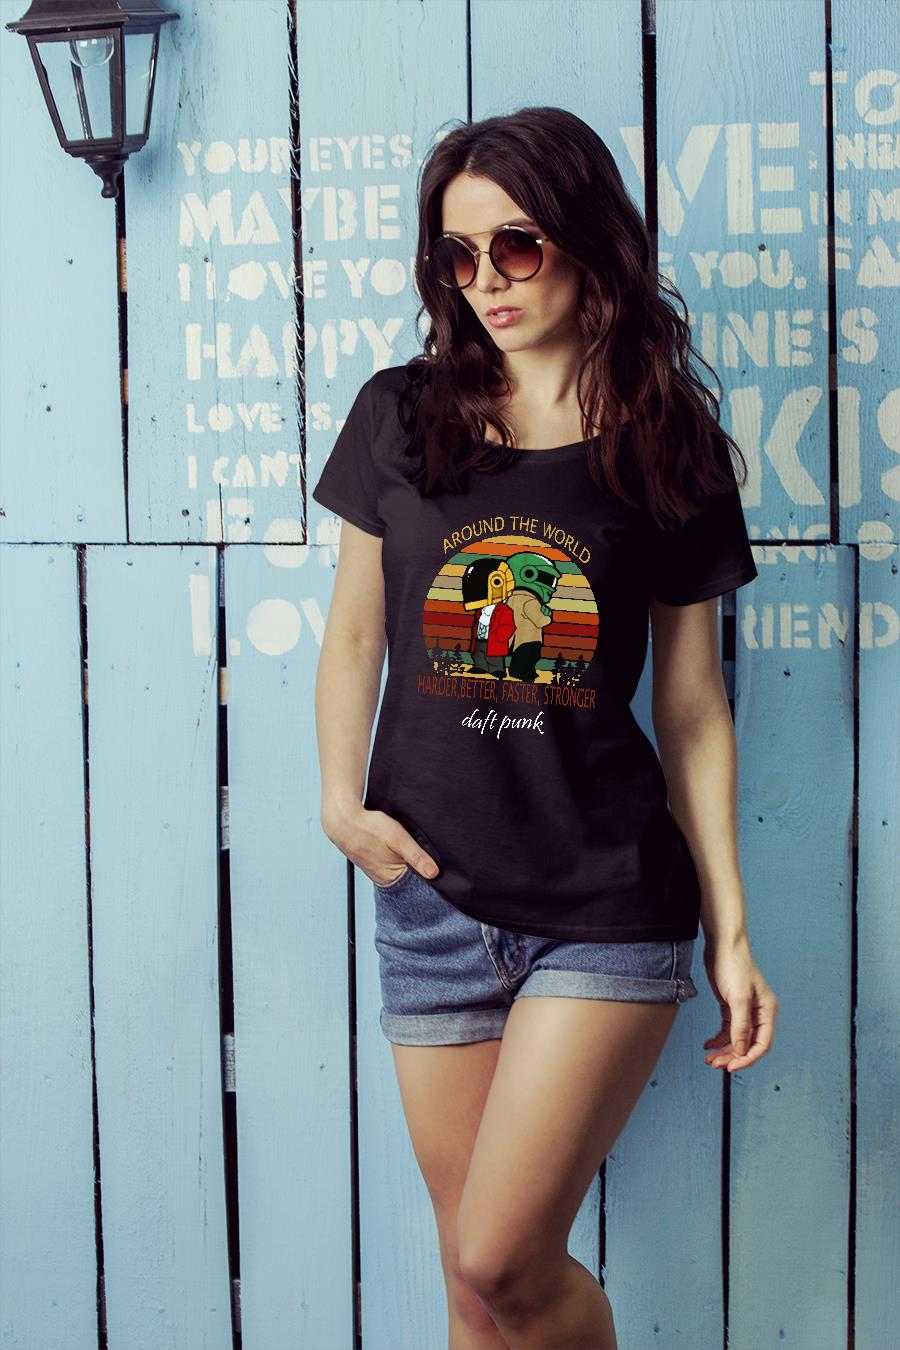 Daft Punk Around the world harder better faster stronger shirt ladies tee official